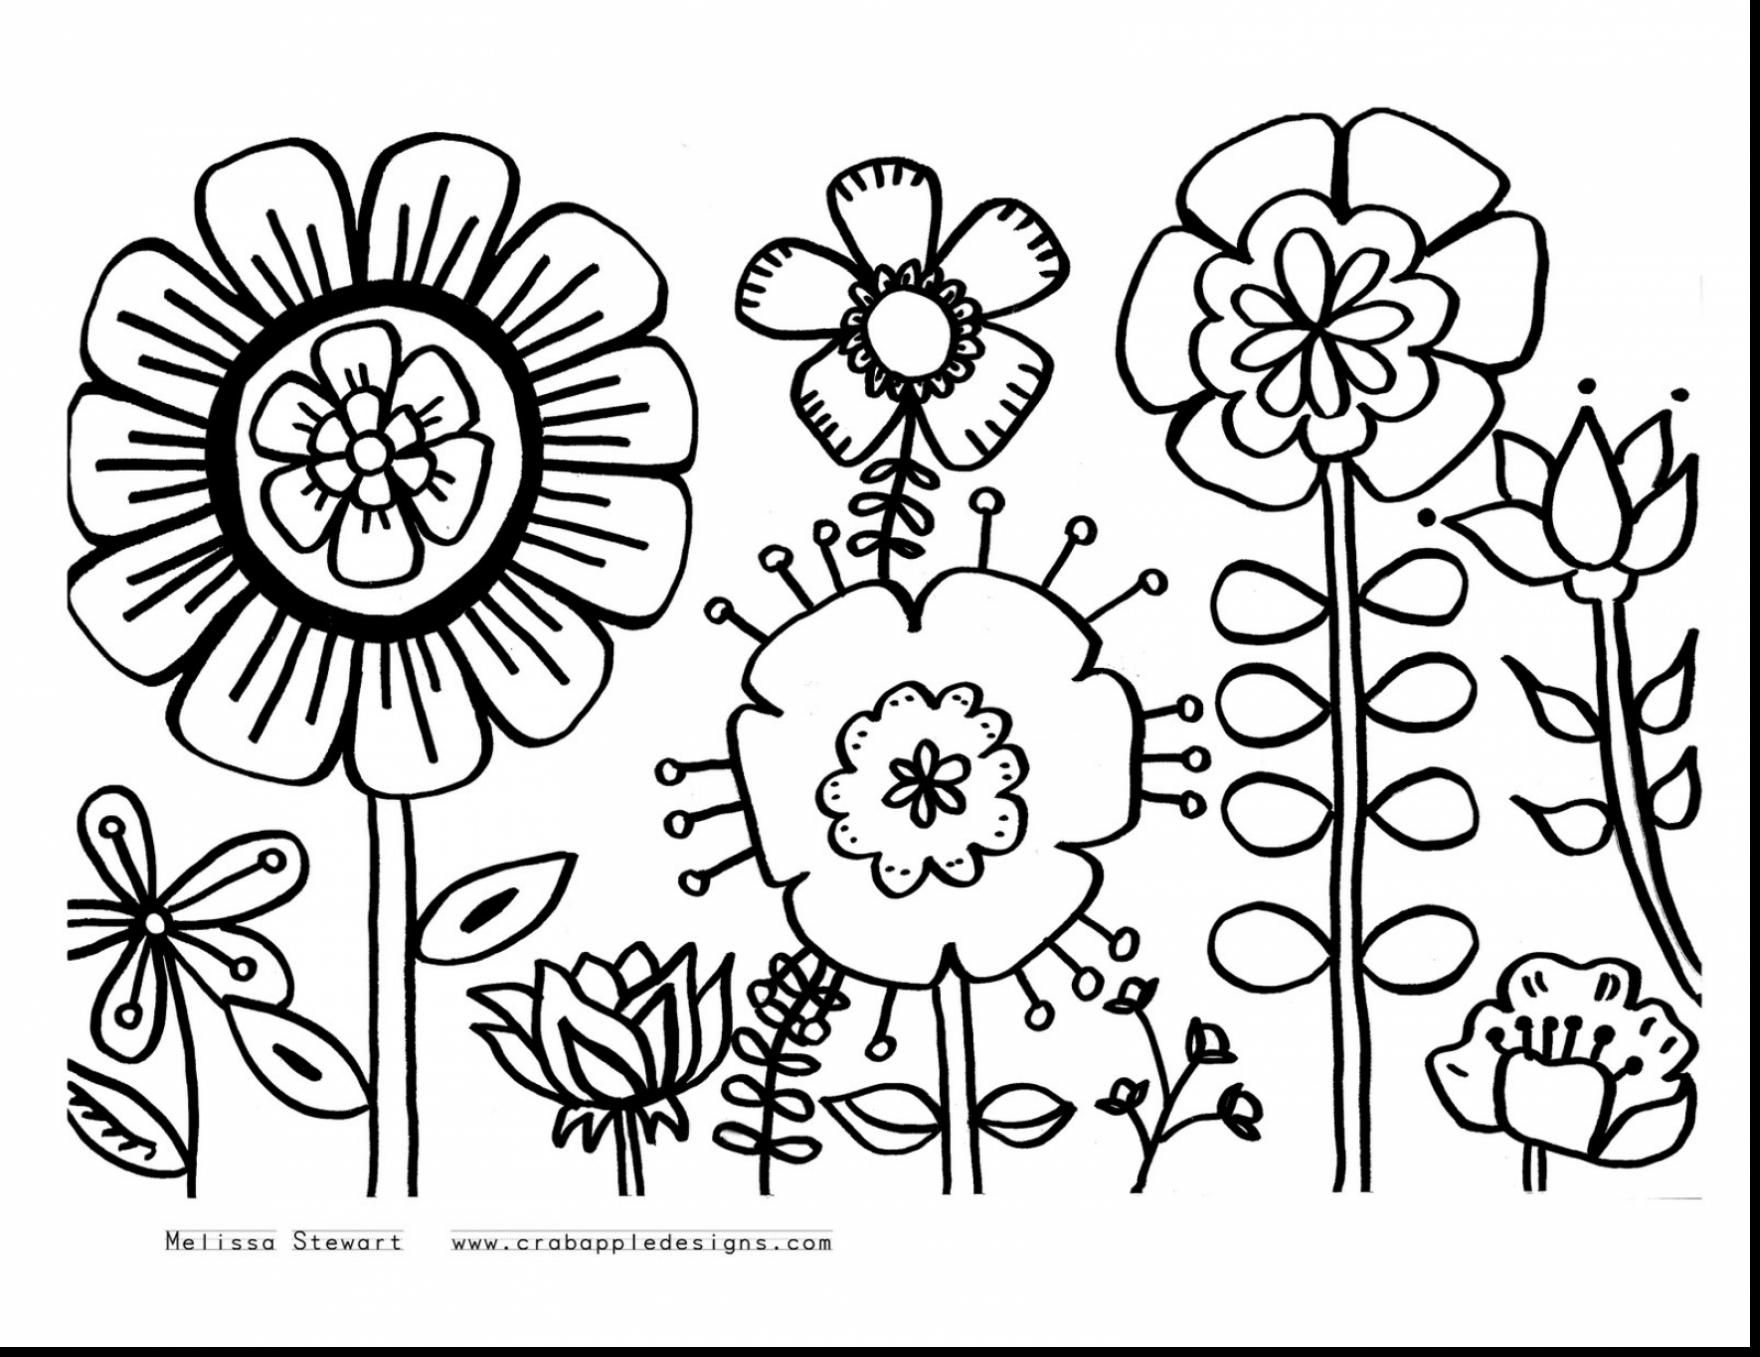 Coloring Pages Of Random Designs. Explore Easy Drawings Of Flowers and more  unbelievable remembrance day poppies coloring page with free